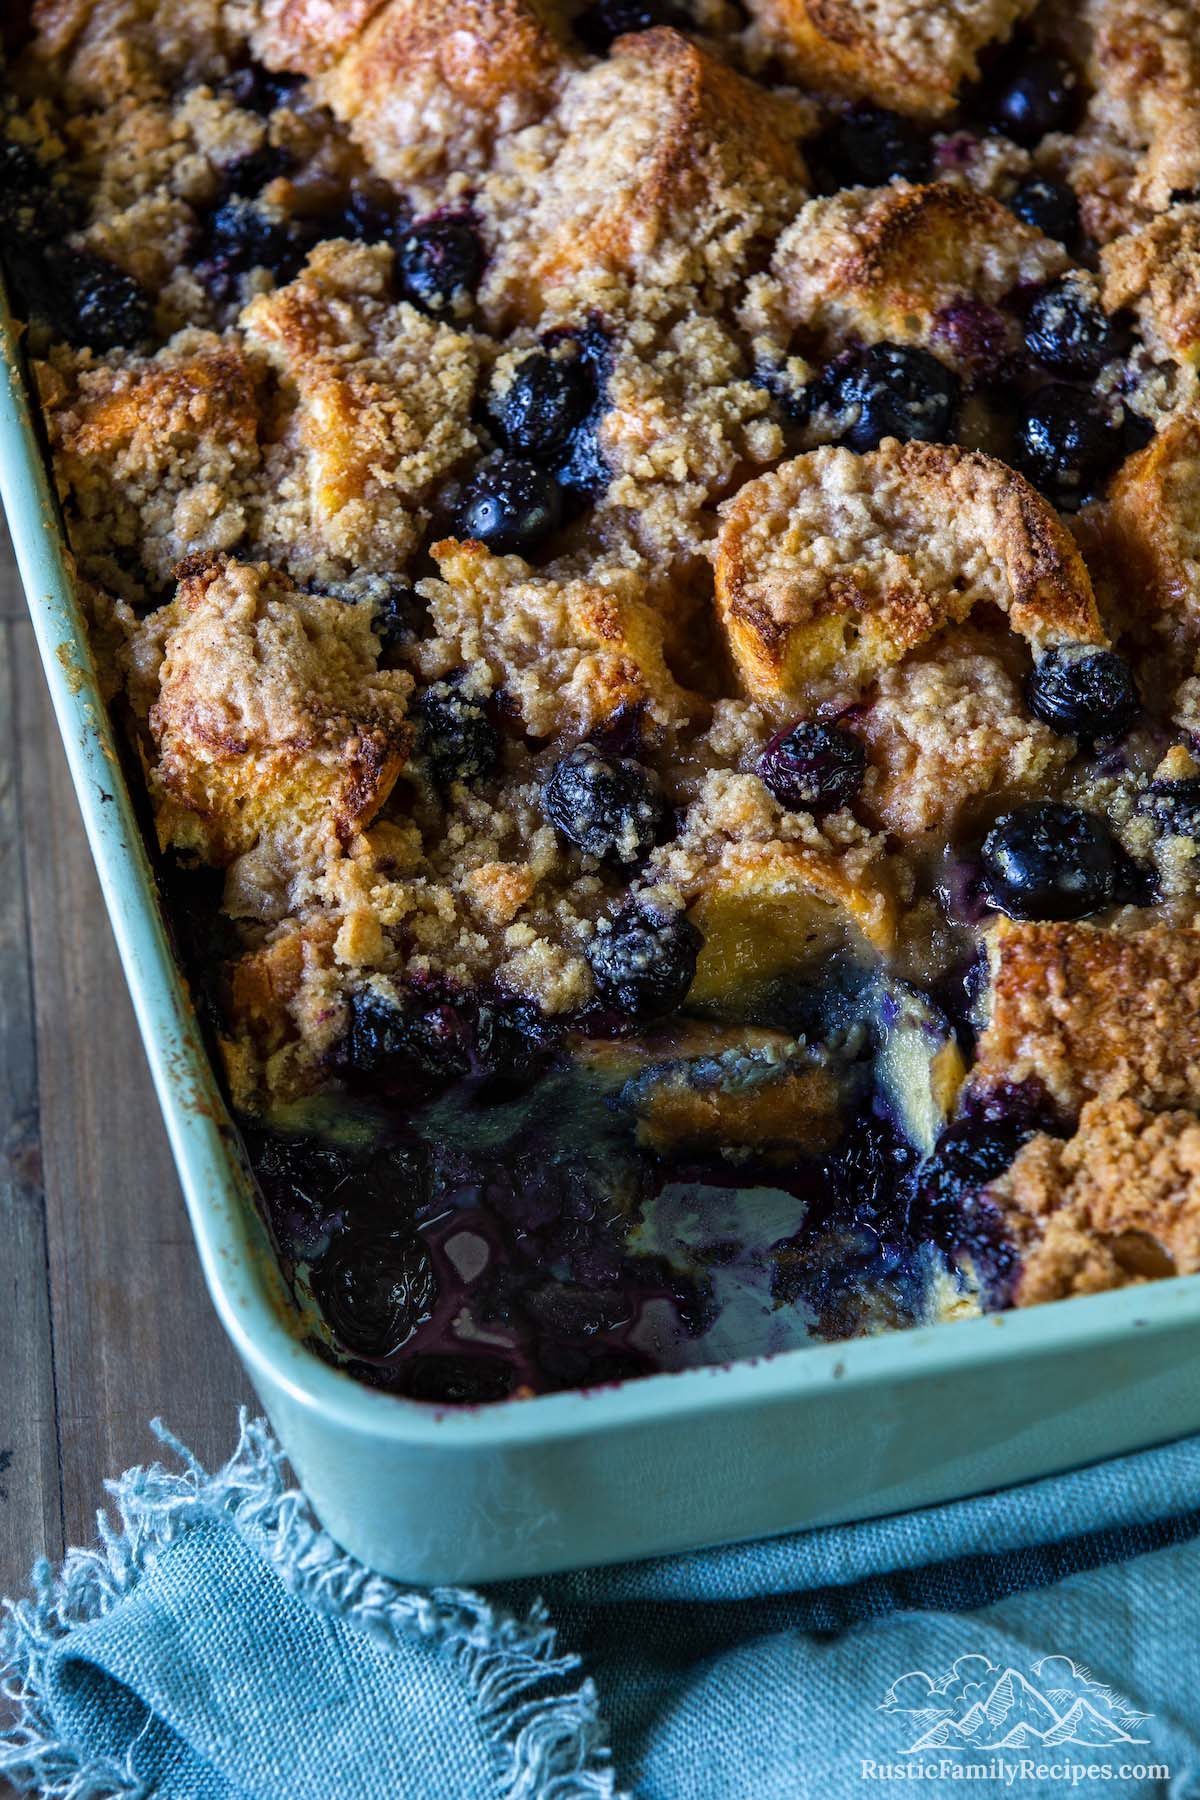 Blueberry french toast bake in a casserole dish with a slice taken out